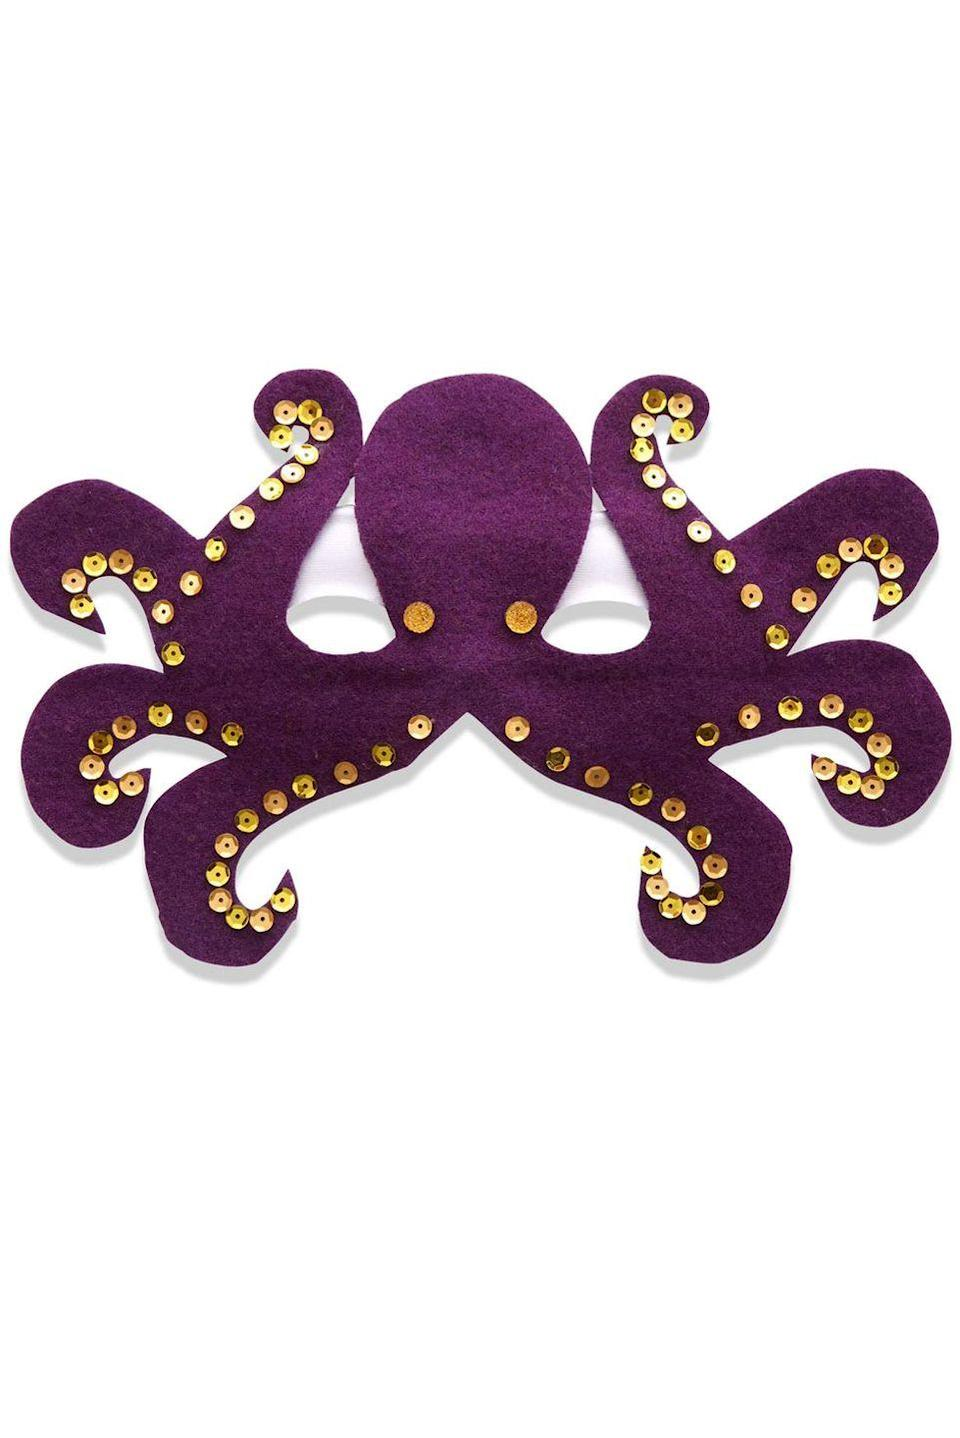 <p>Eight legs means eight times the fun on Halloween with his octopus mask. </p><p>1. Cut out the octopus shape from purple felt and use craft glue to affix it to the mask, lining up the bottom of each eye with the top of the first tentacle. Let dry. </p><p>2. Glue on rhinestones for eyes and sequins along the bottom of each tentacle to create suction cups. </p><p>3. To complete this look, using double-stick fabric tape, attach gold cupcake liners to a long-sleeve purple T-shirt to create two more tentacles.</p>